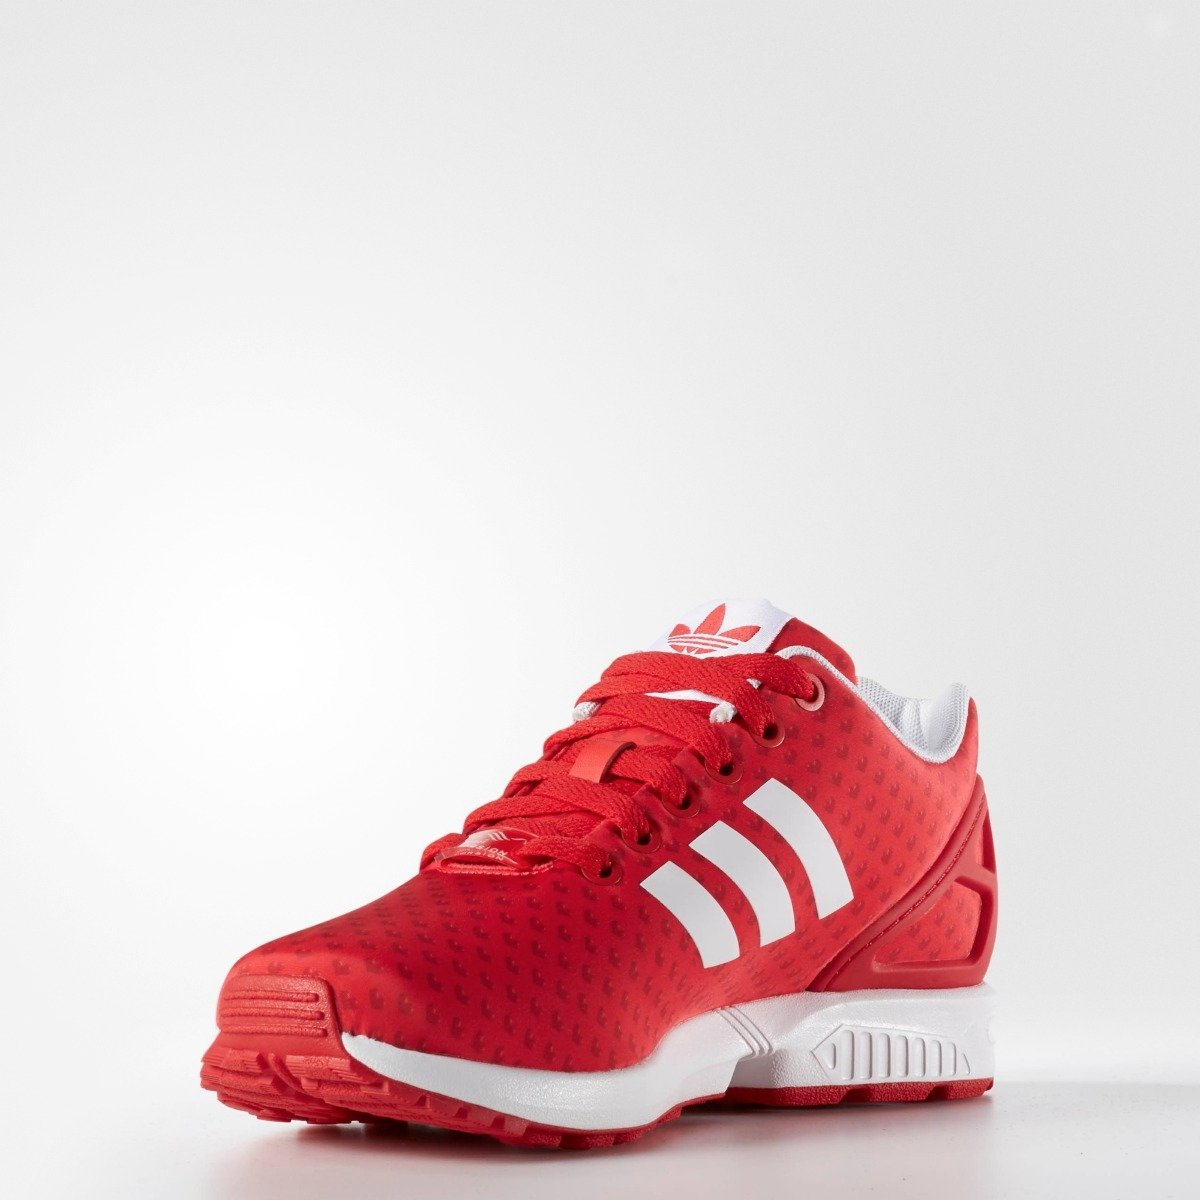 pretty nice a9e9b 646ef Women's Adidas Originals ZX Flux Red with Heart Print - 5 / RED